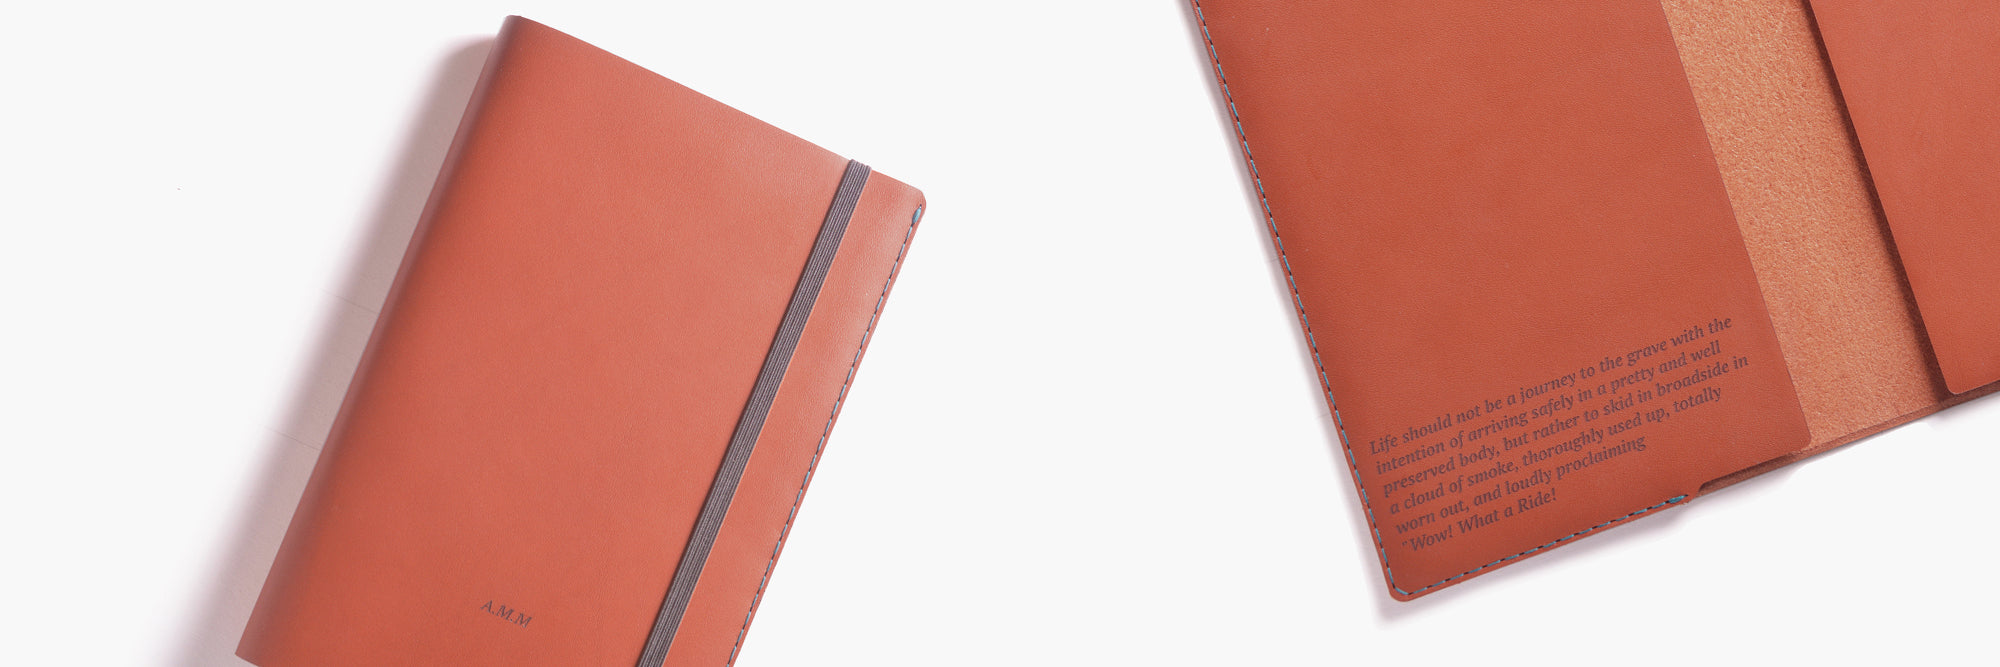 Personalised leather notebook cover in cognac by Wingback